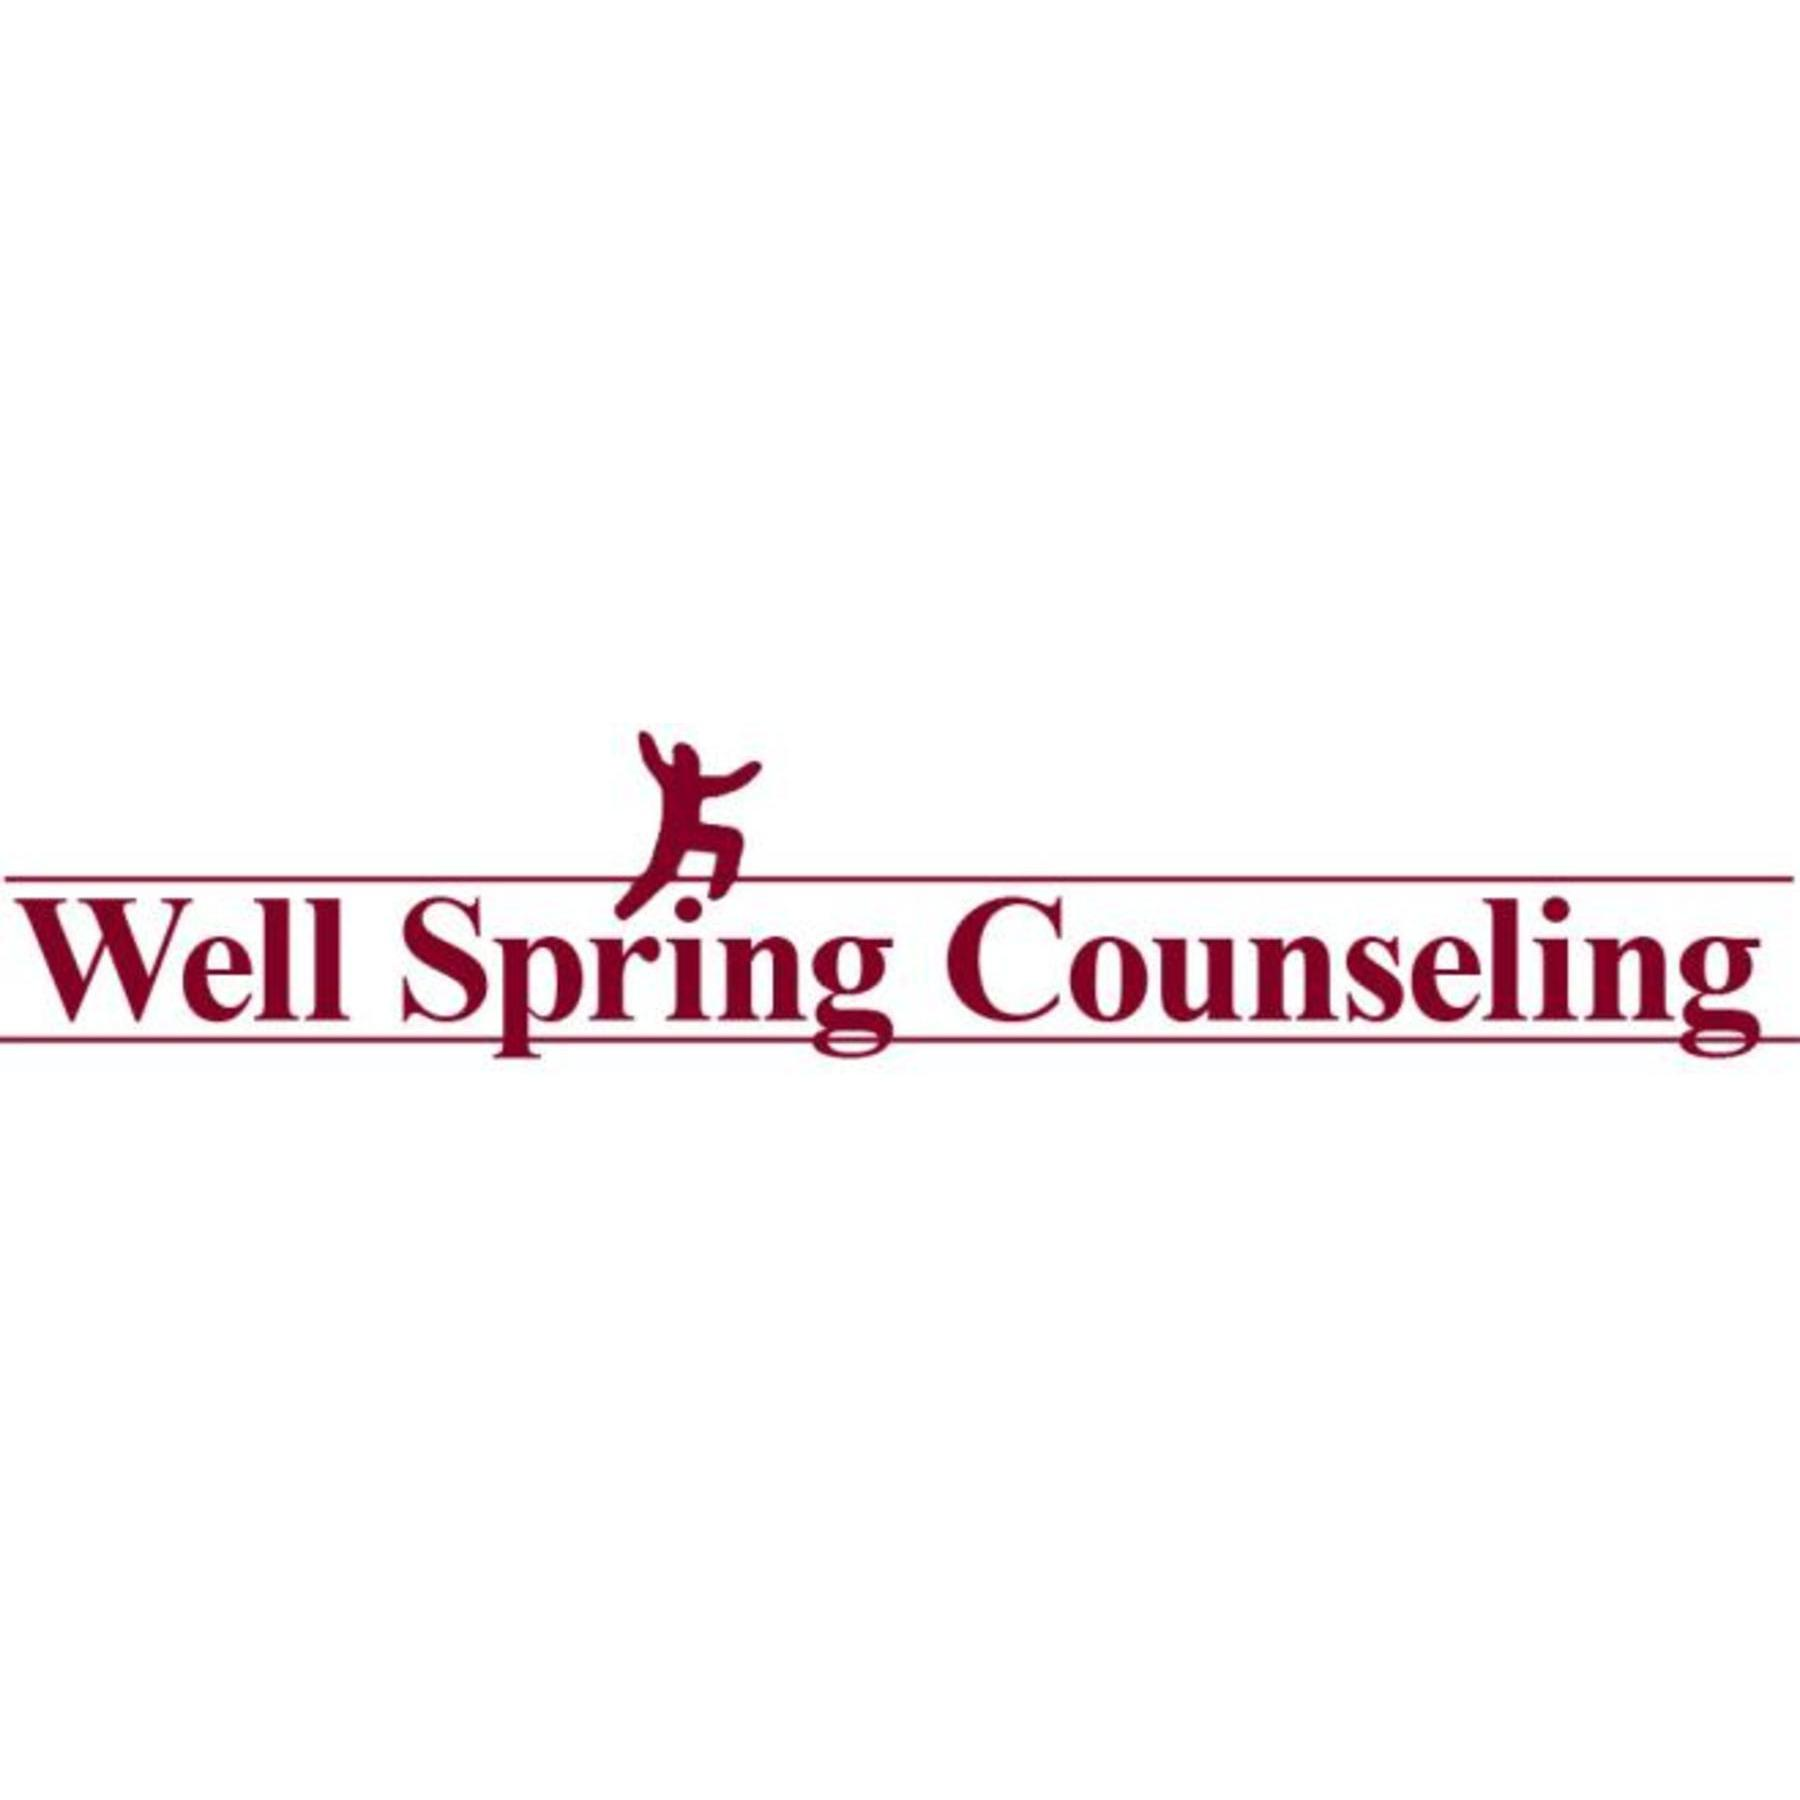 Well Spring Counseling